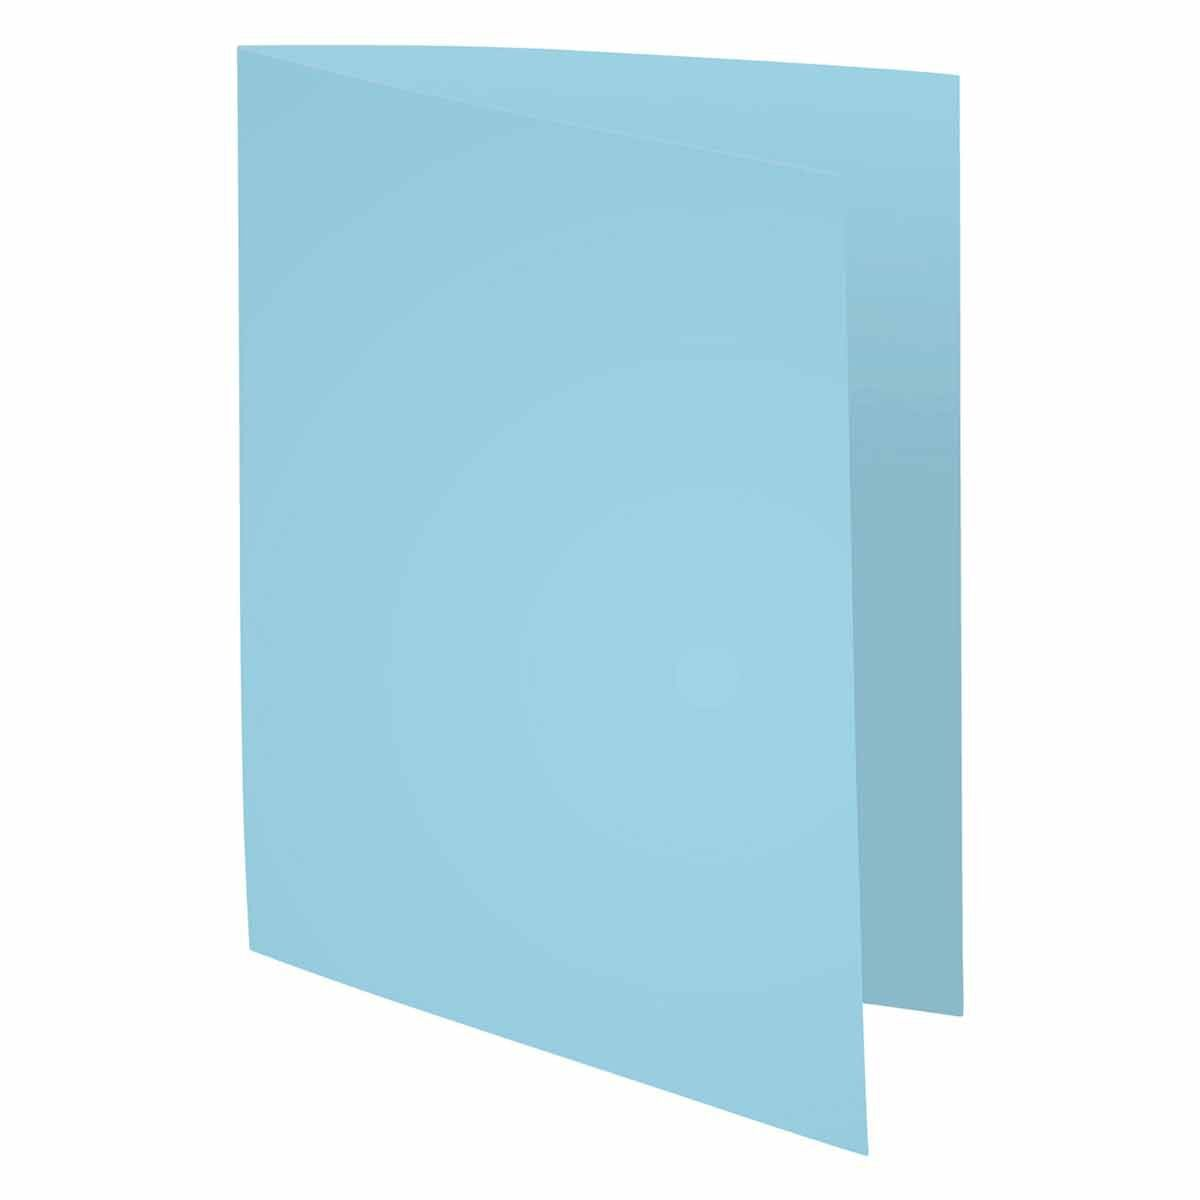 Exacompta Forever Square Cut Folders A4 220gsm Pack of 500 Light Blue